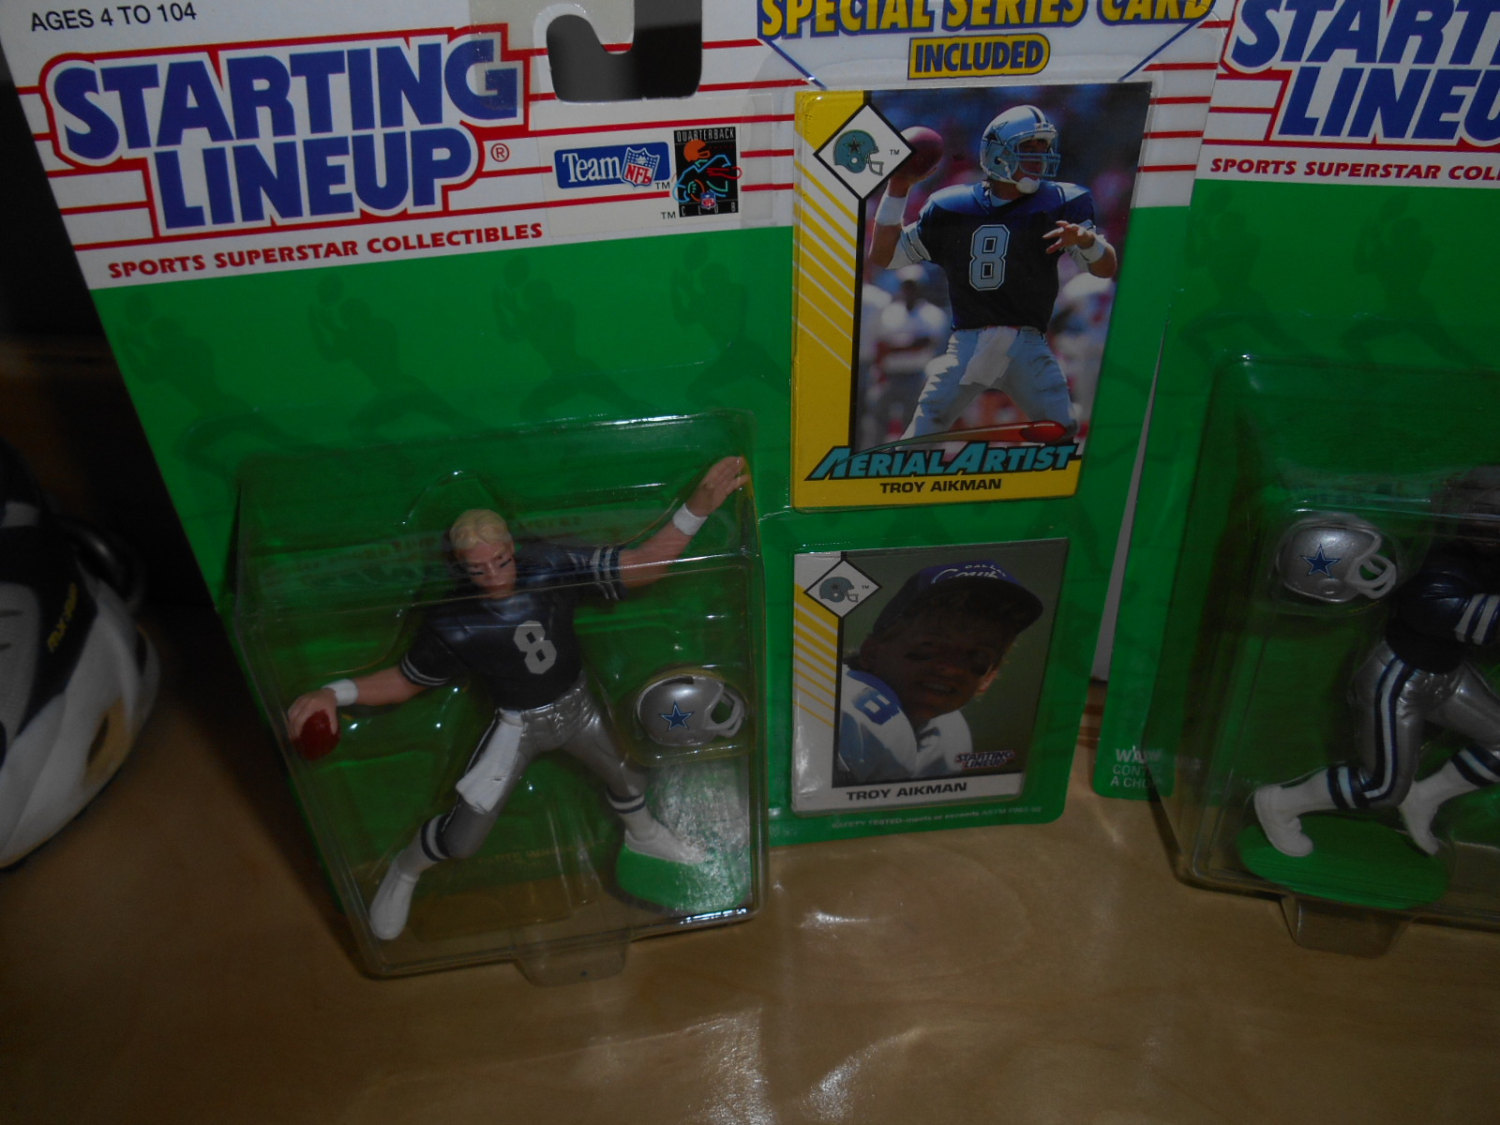 vgt 3 lot starting lineup figs. with special series cards troy aikman,michael ir